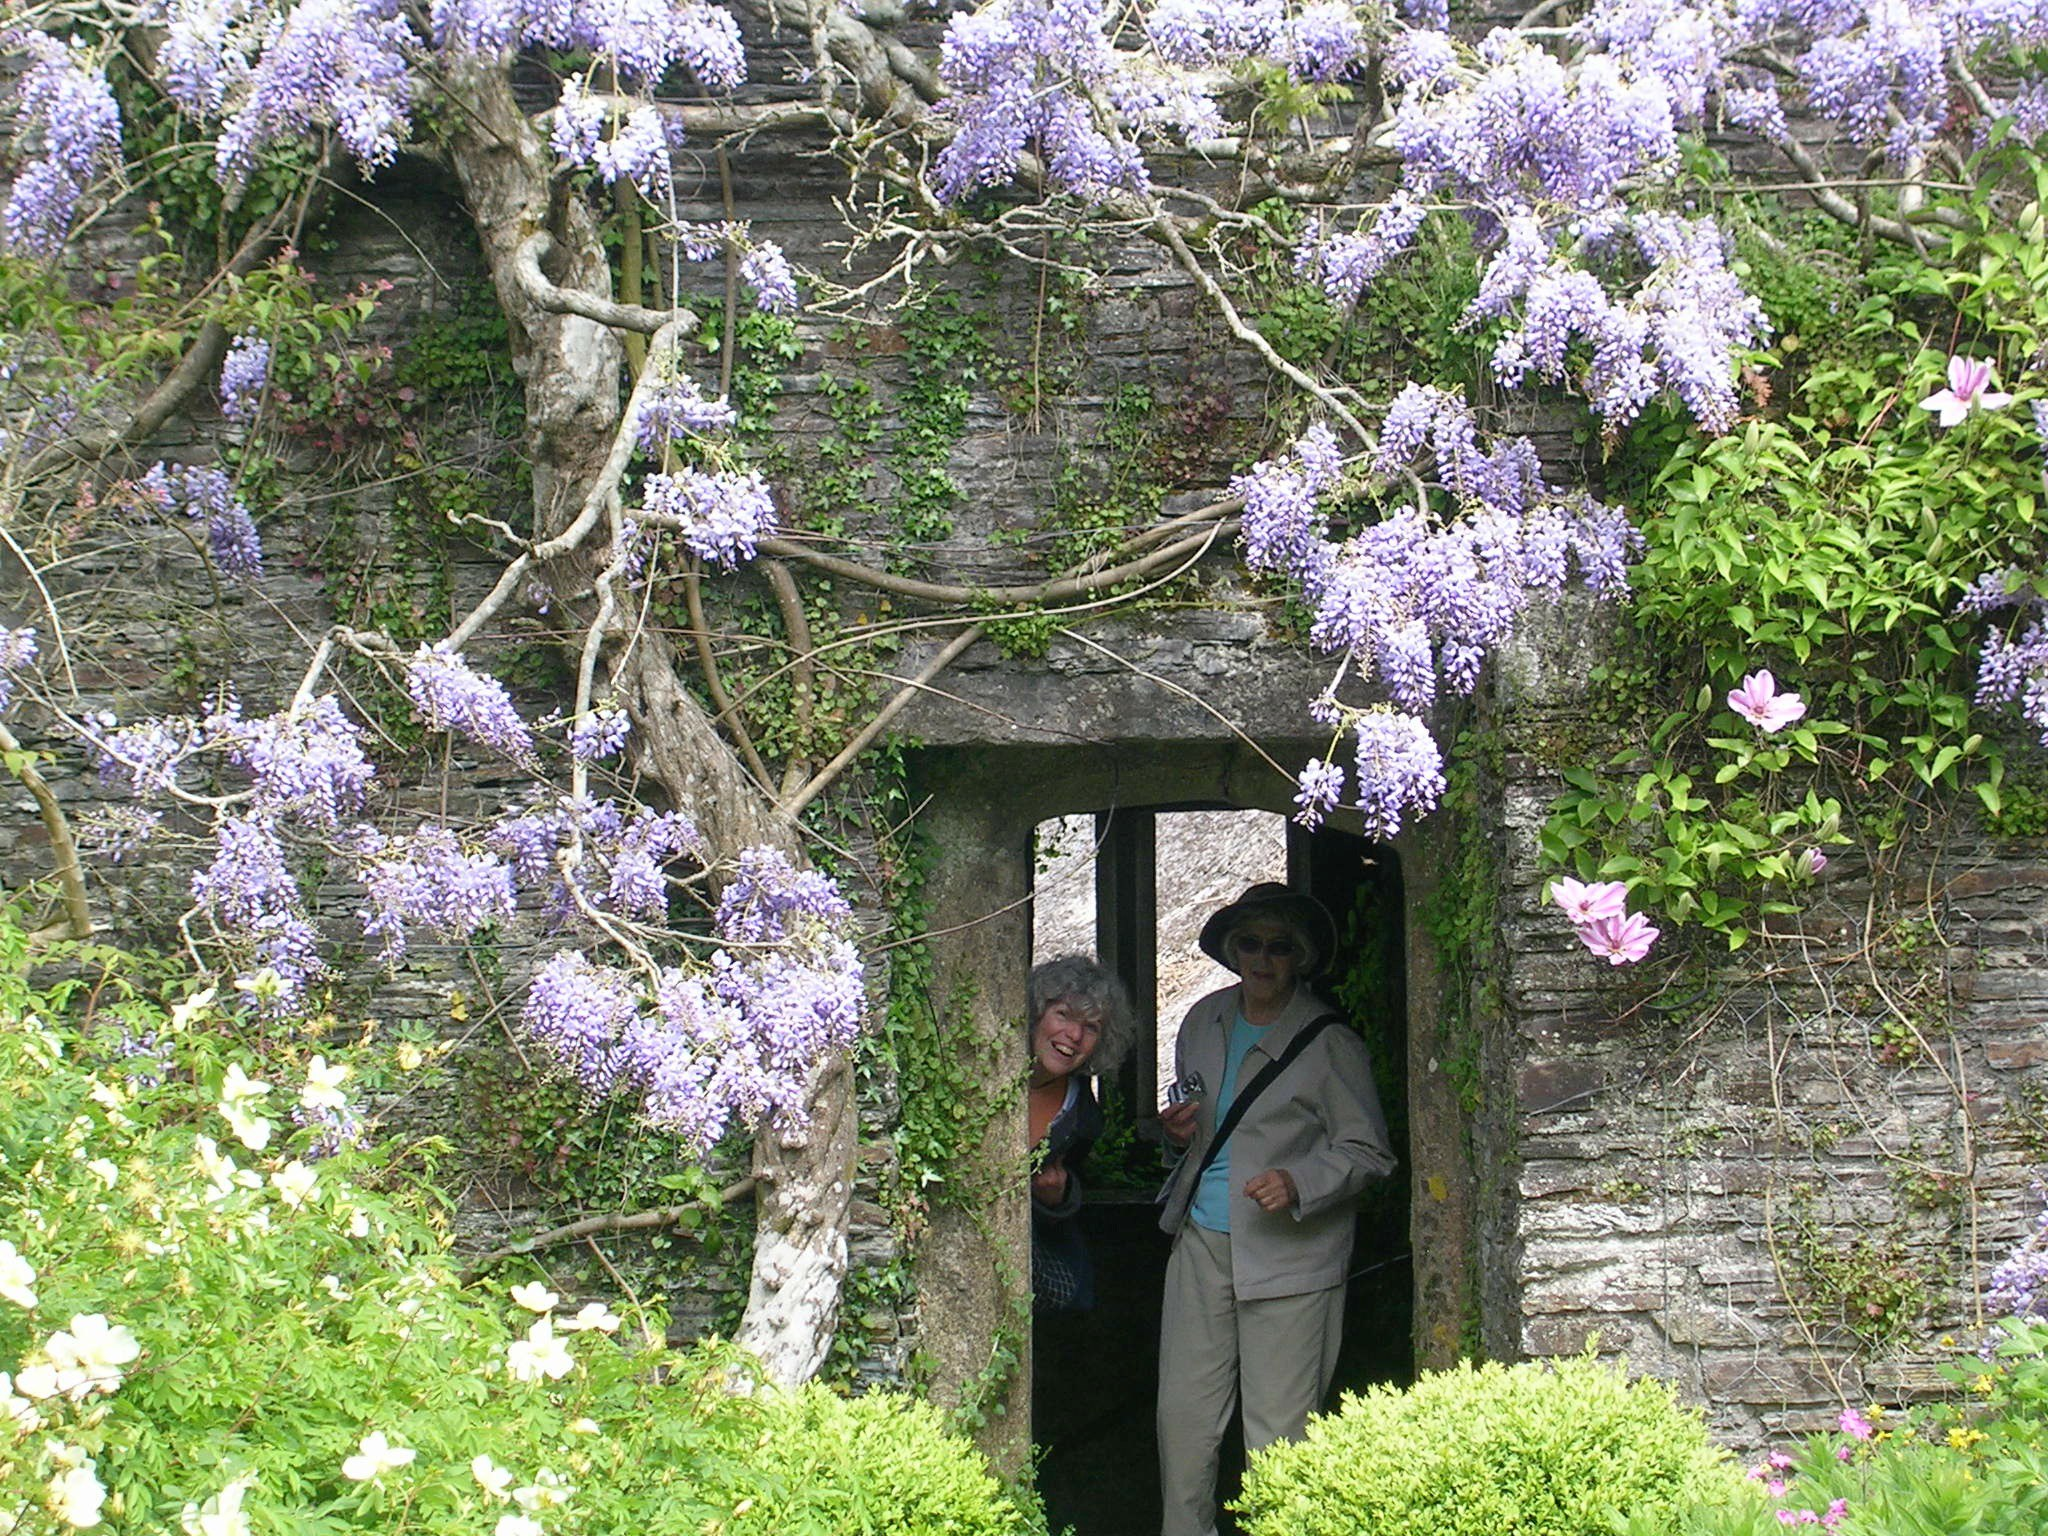 How To Grow Wisteria Vine Growing And Caring For